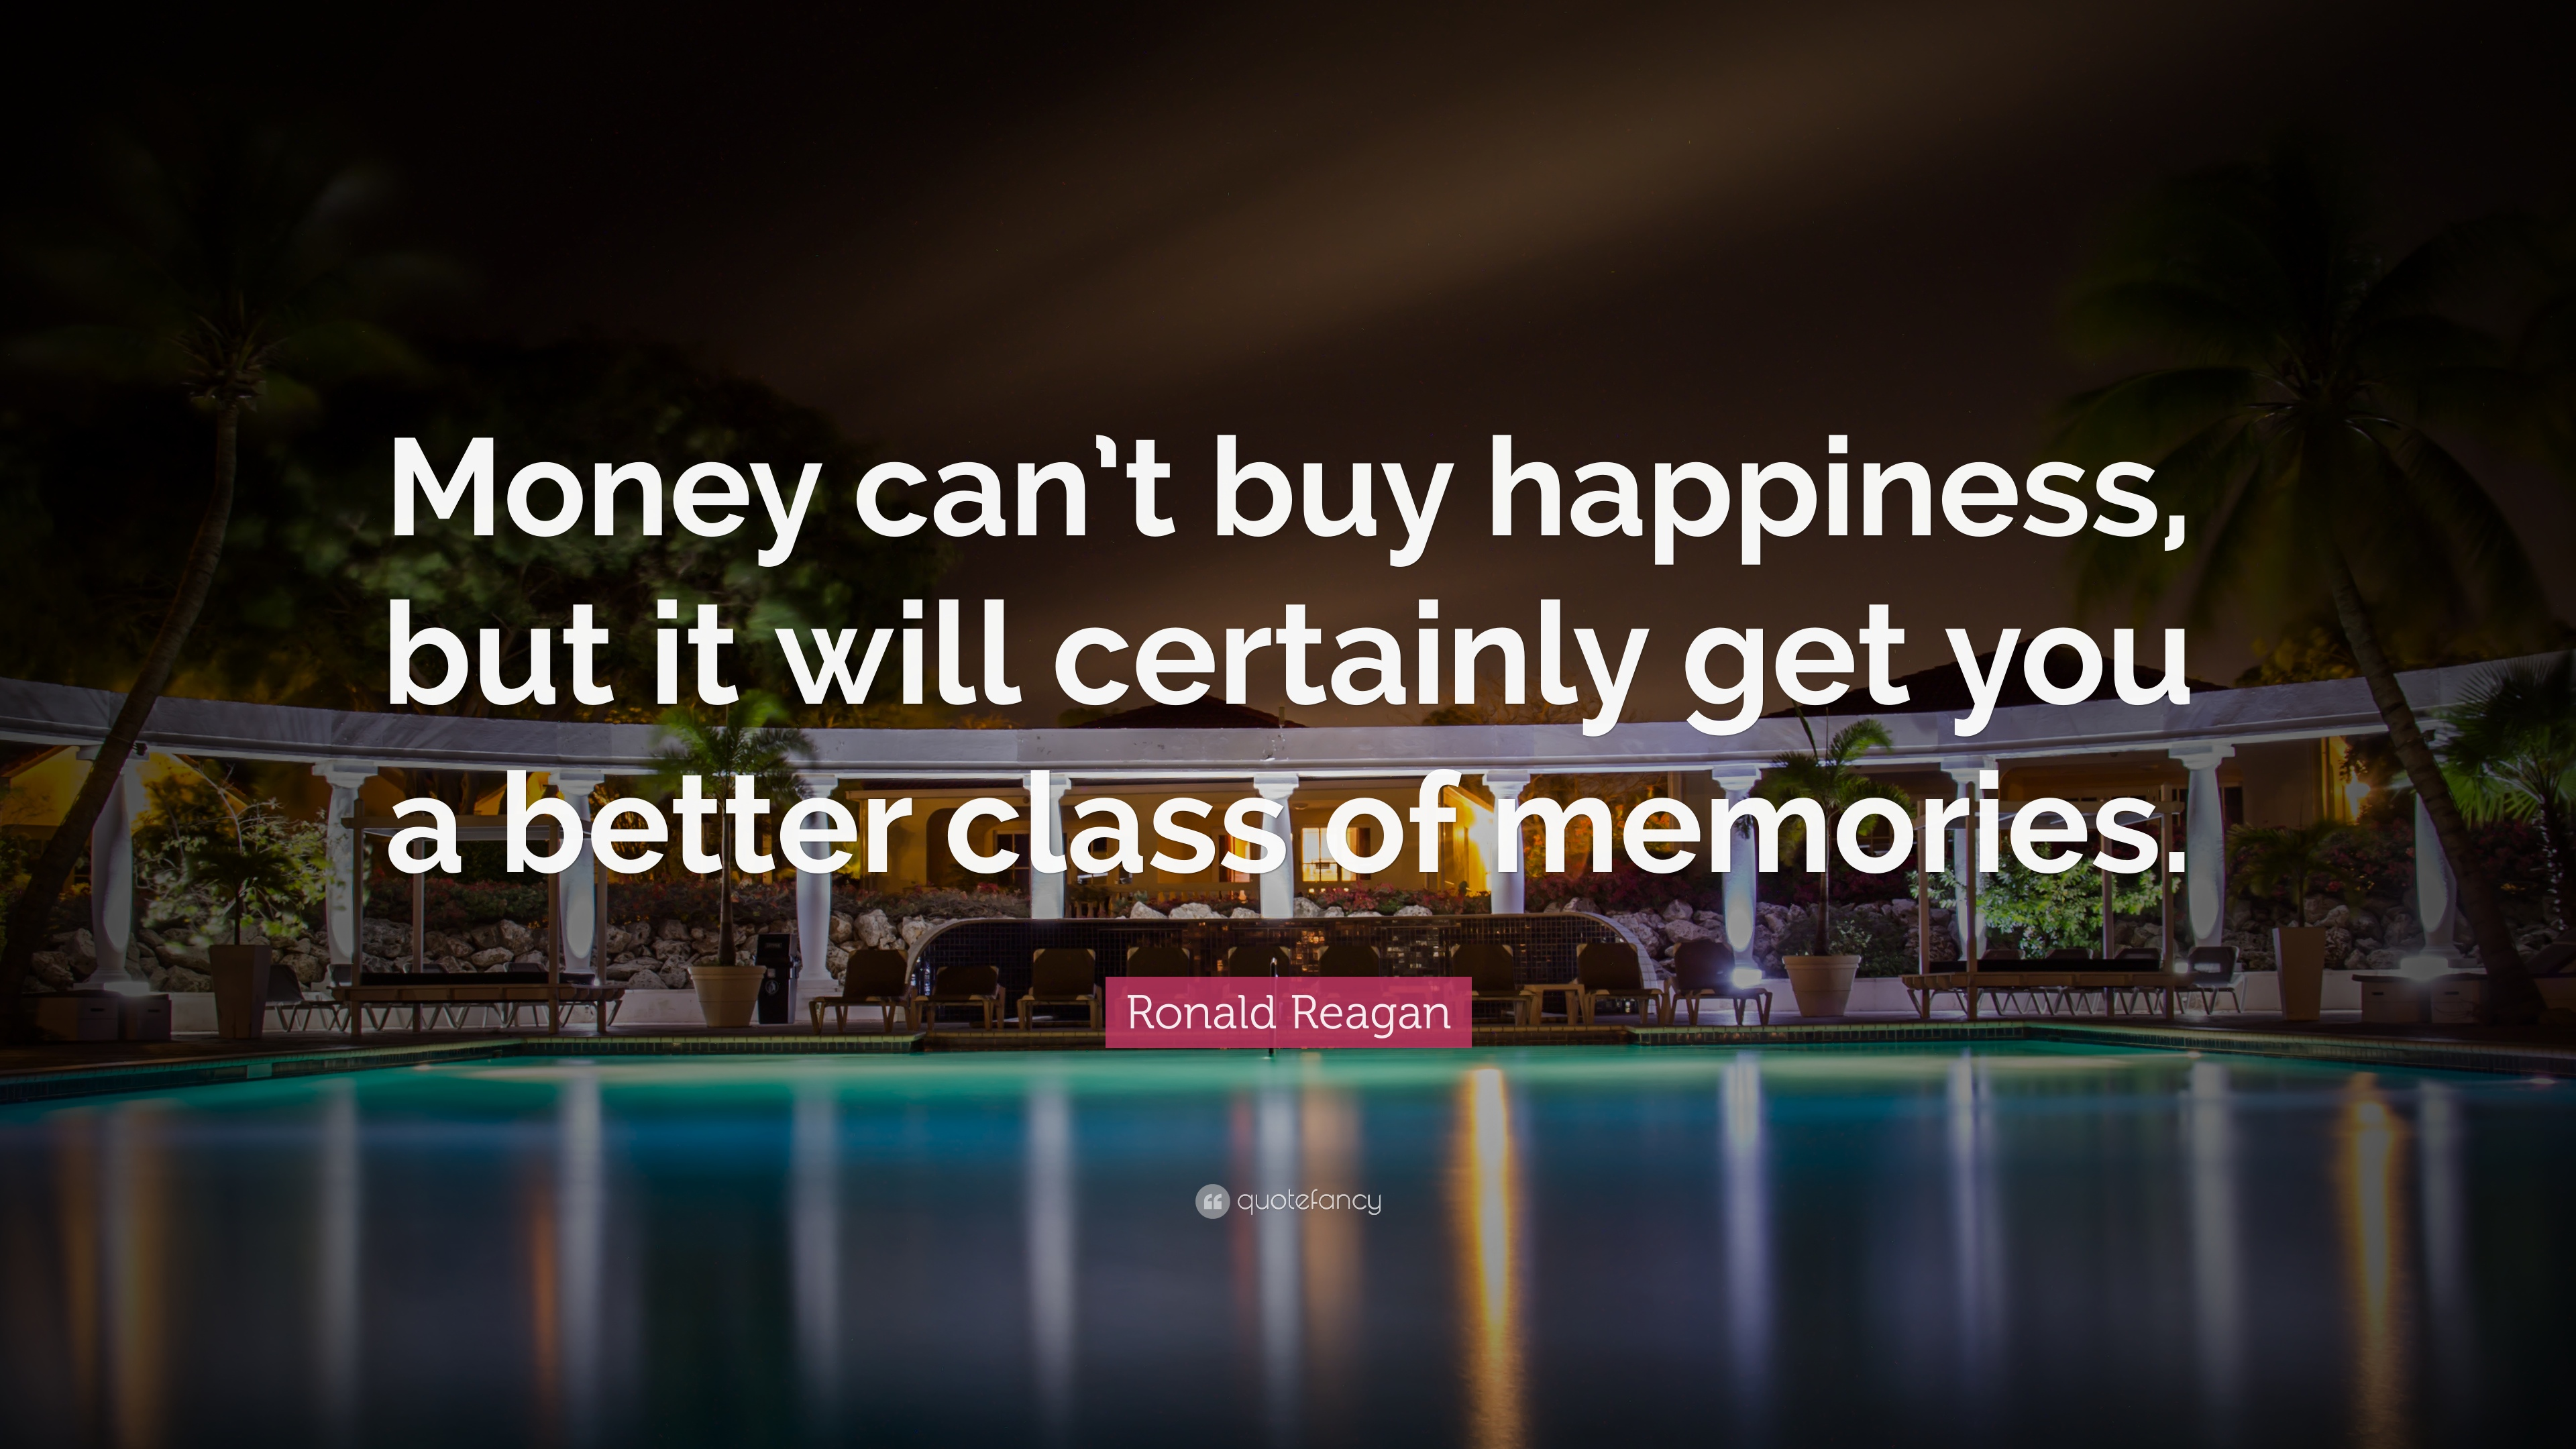 Get Money Quotes Quotes About Money 42 Wallpapers  Quotefancy